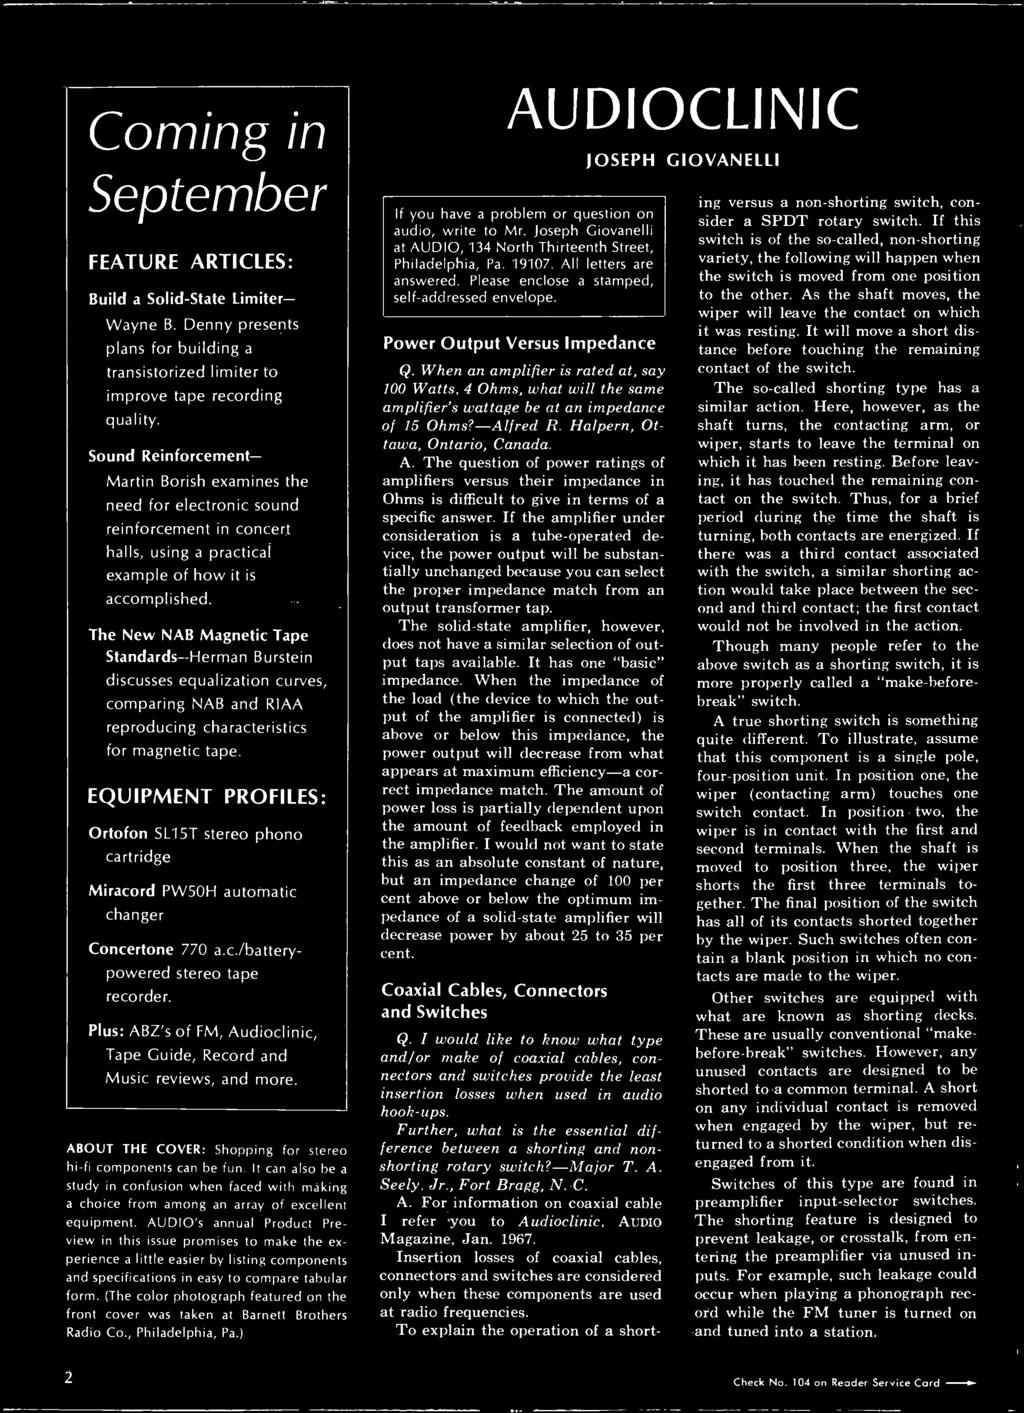 Stereo Hi Fi Preview Issue Pdf Concertone Wiring Diagram The New Nab Magnetic Tape Standards Herman Burstein Discusses Equalization Curves Comparing And